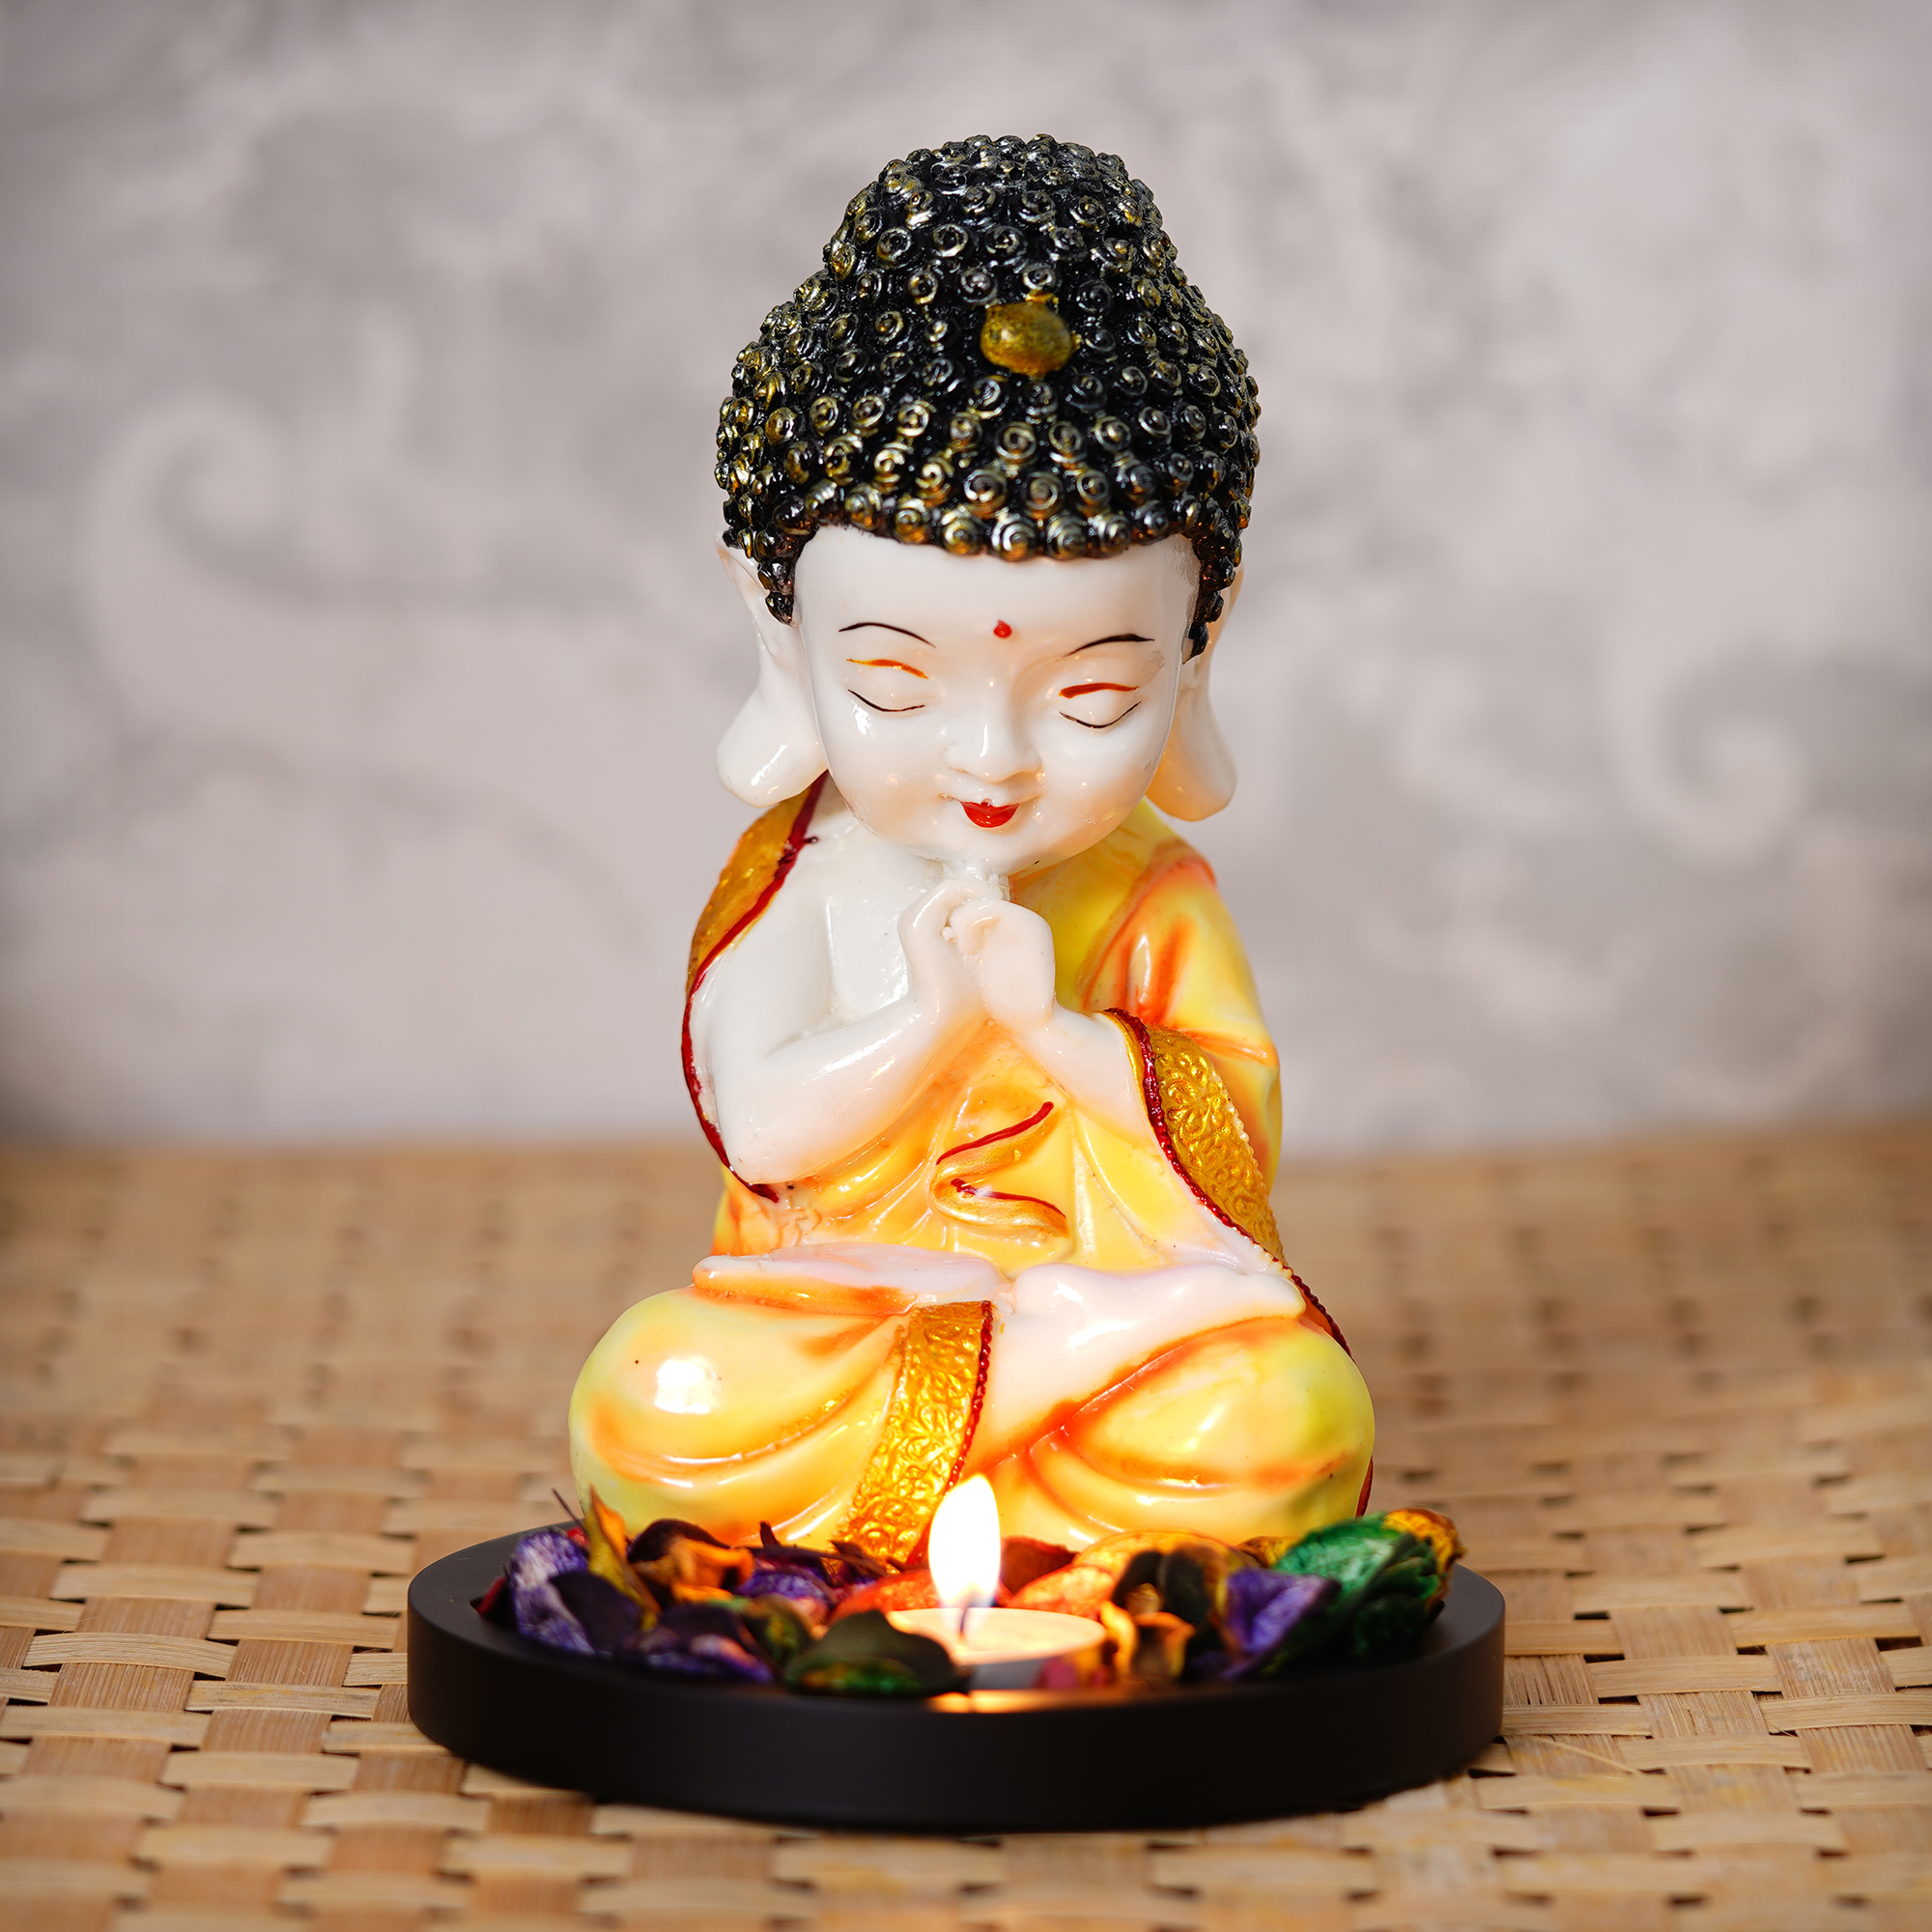 Praying Orange Monk Buddha with Wooden Base, Fragranced Petals and Tealight Indian Home Decor